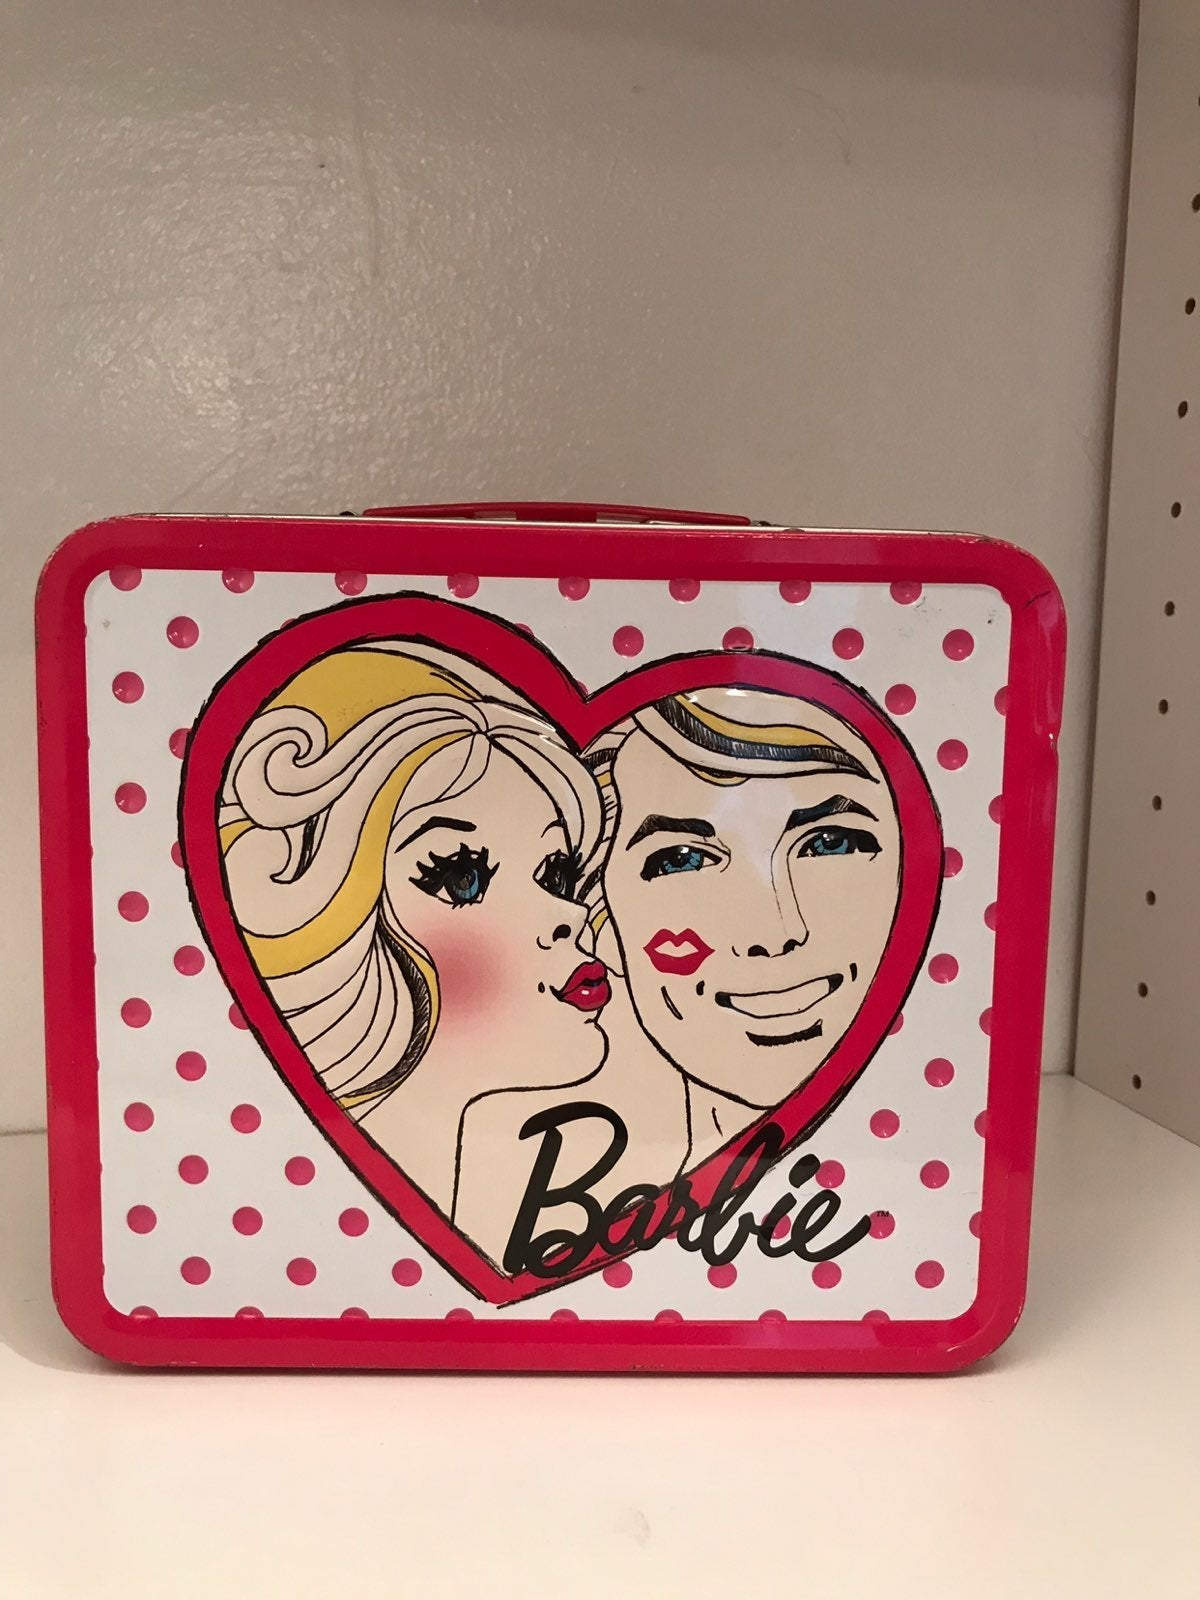 Barbie tin Lunch Box